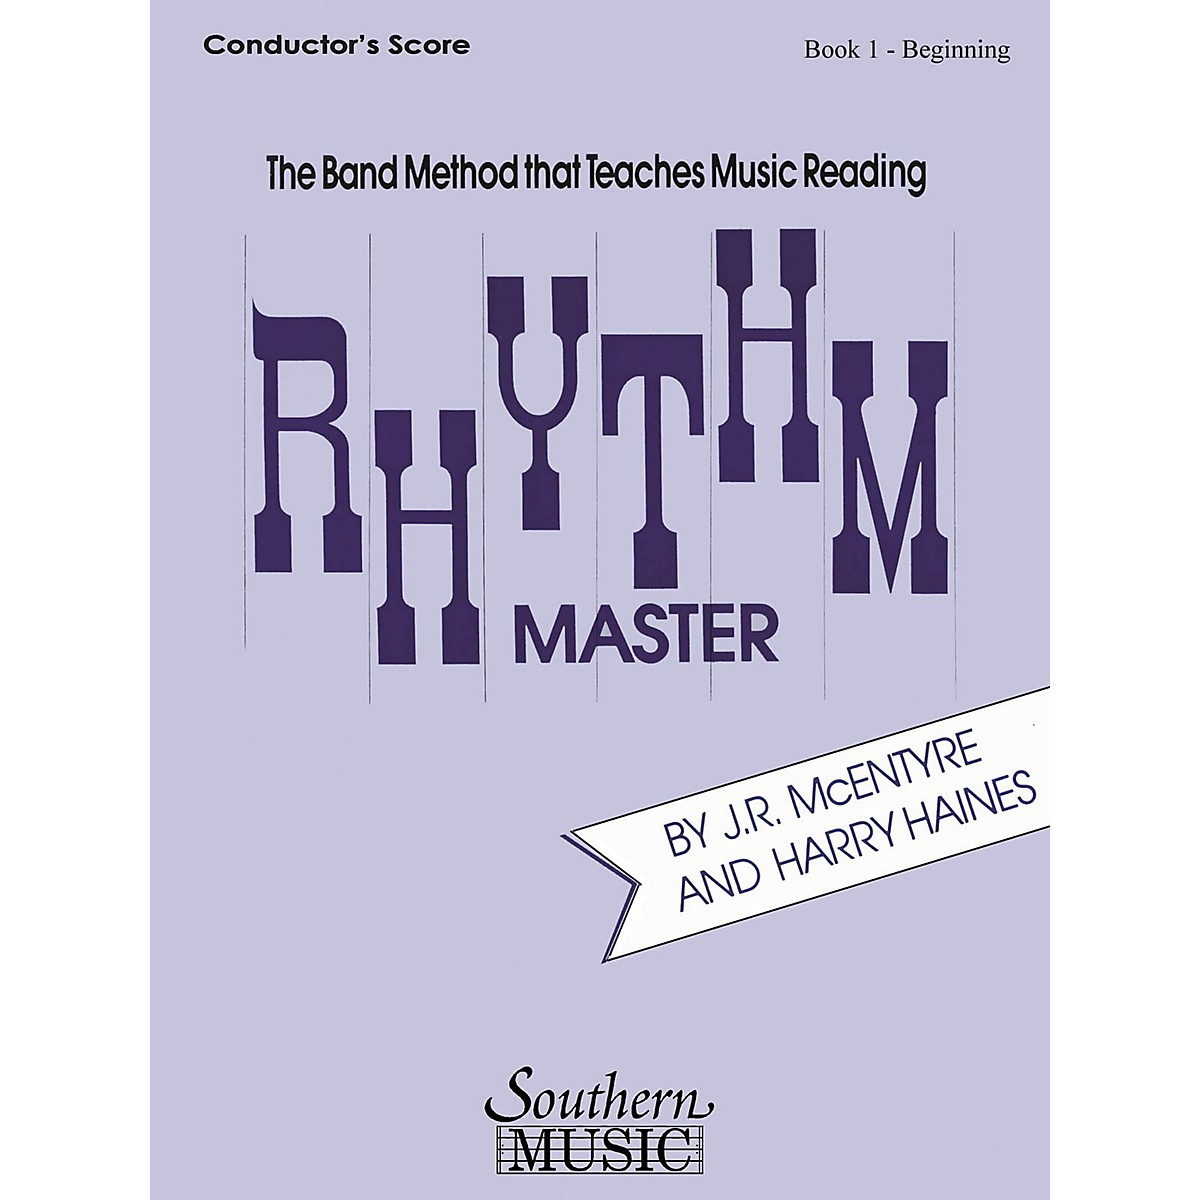 Southern Rhythm Master - Book 1 (Beginner) (Oboe) Southern Music Series by Harry Haines